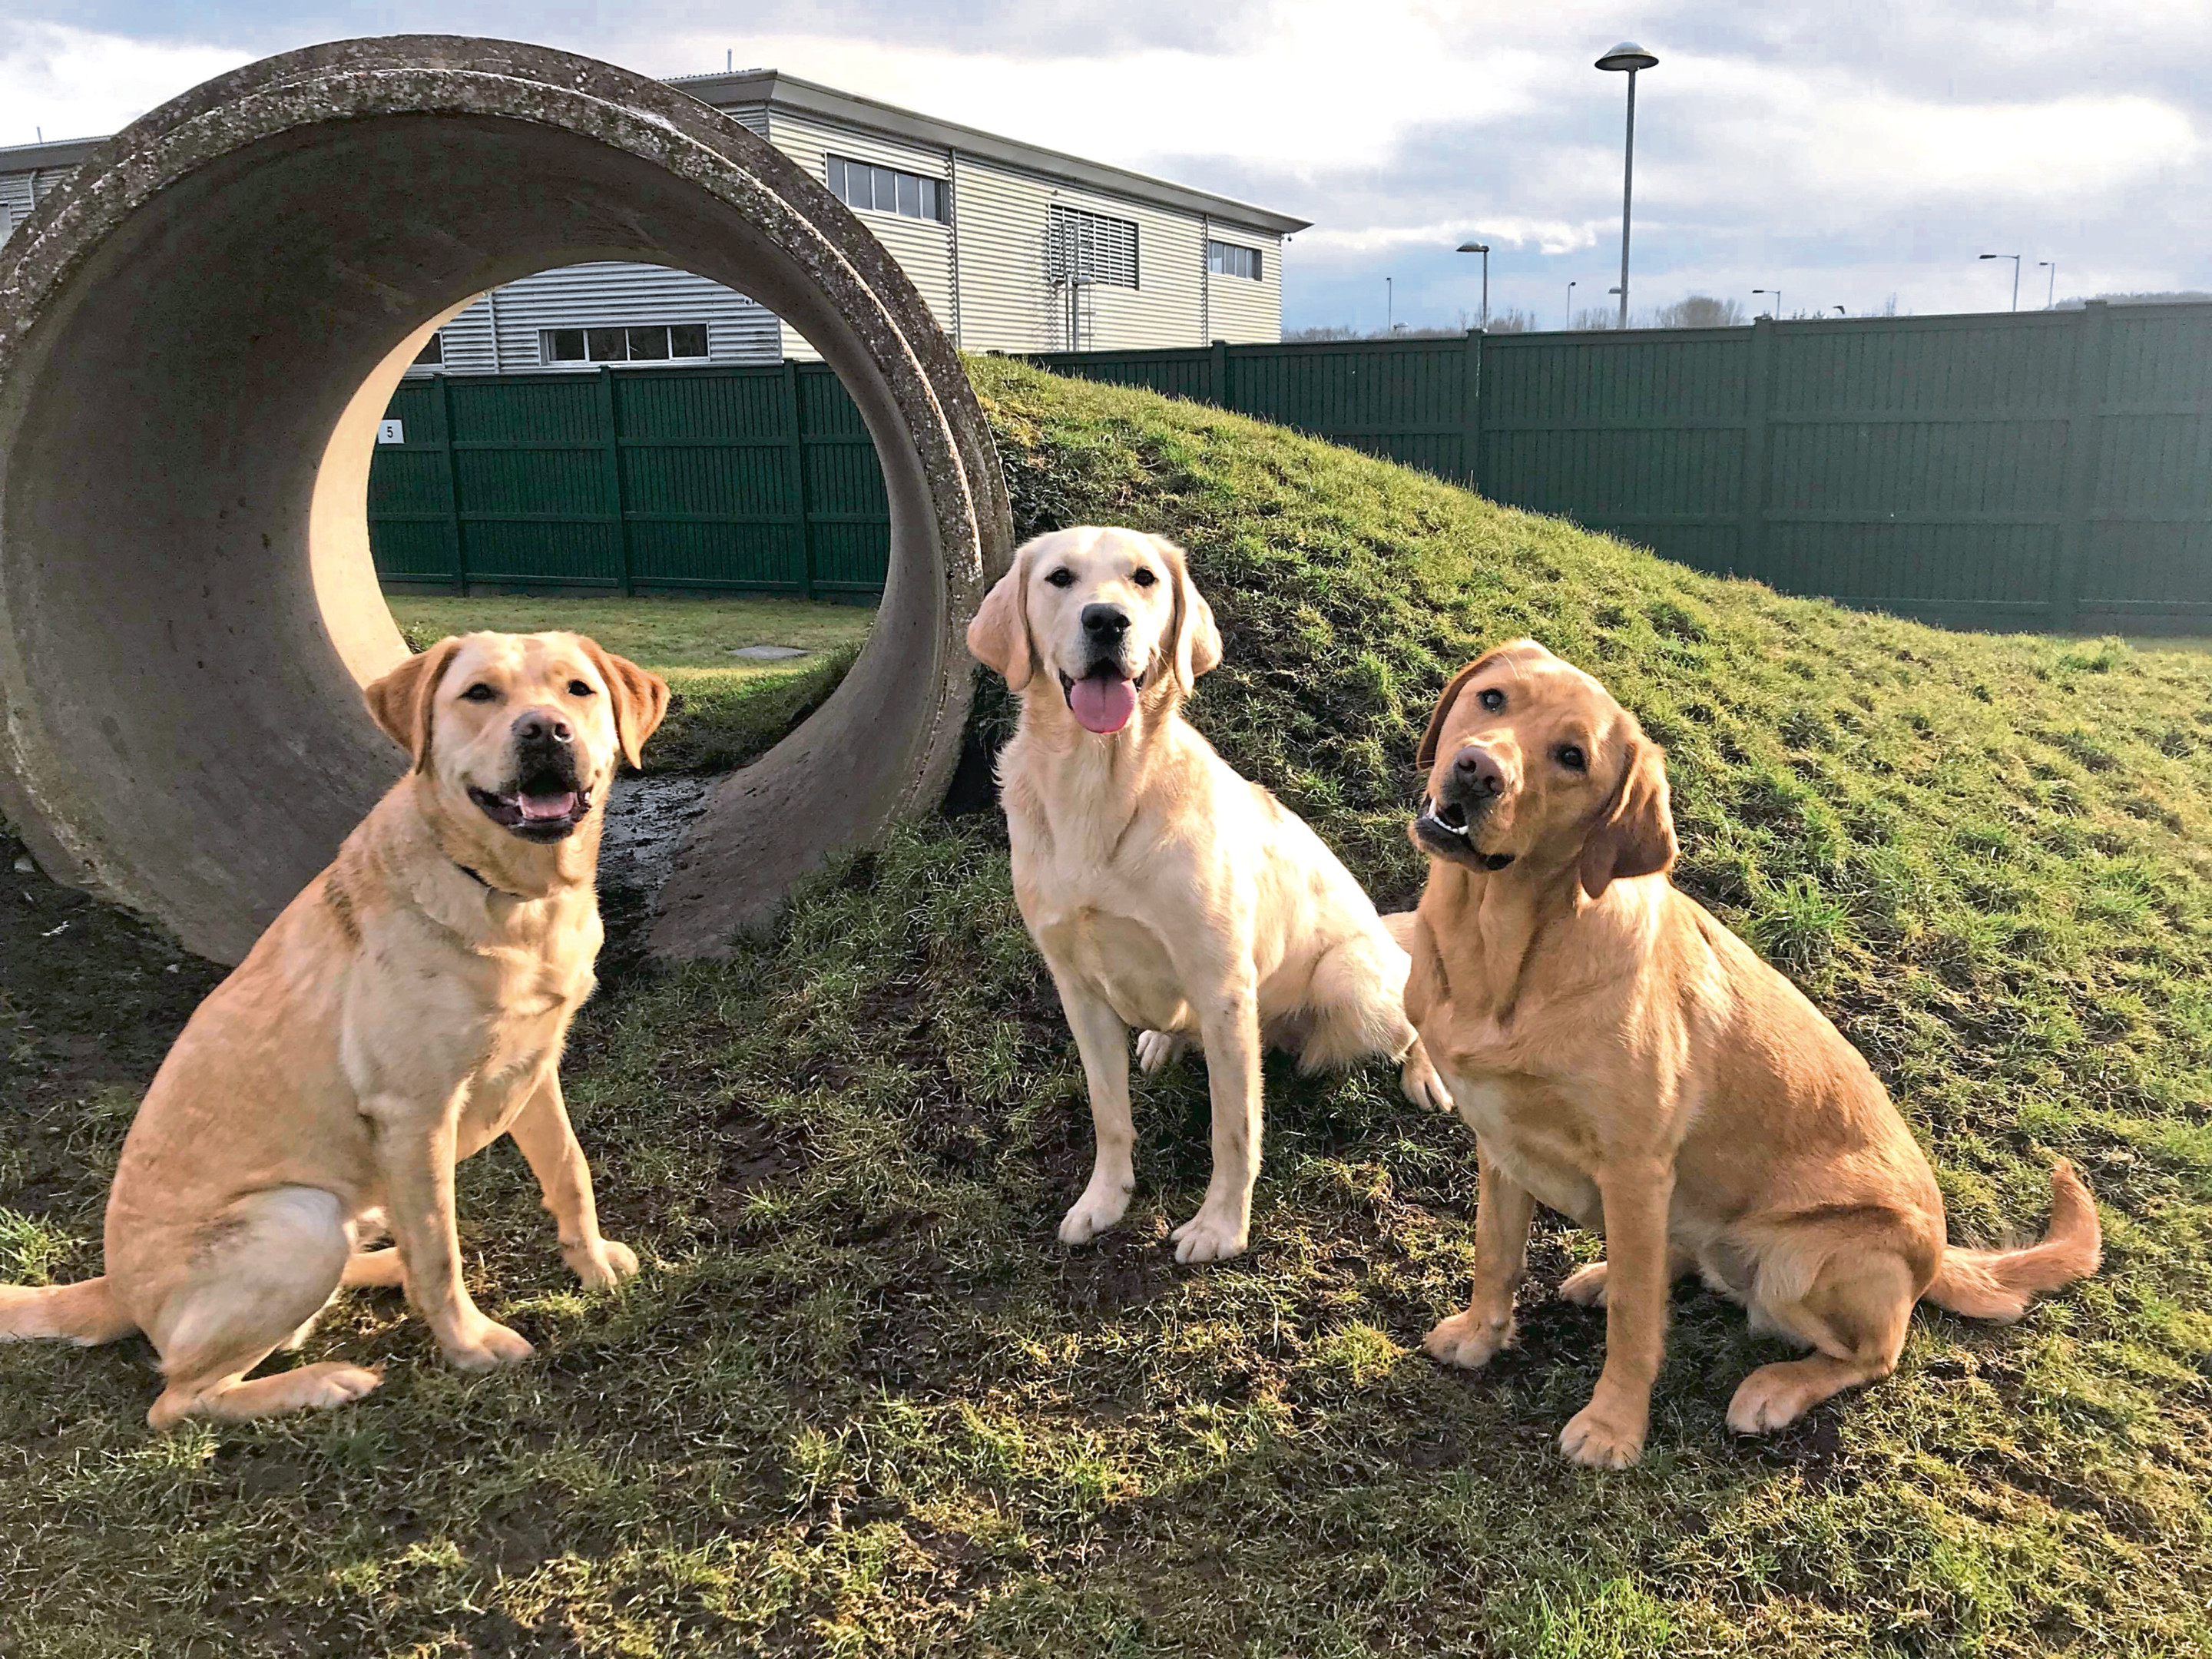 Three of the trainee guide dogs